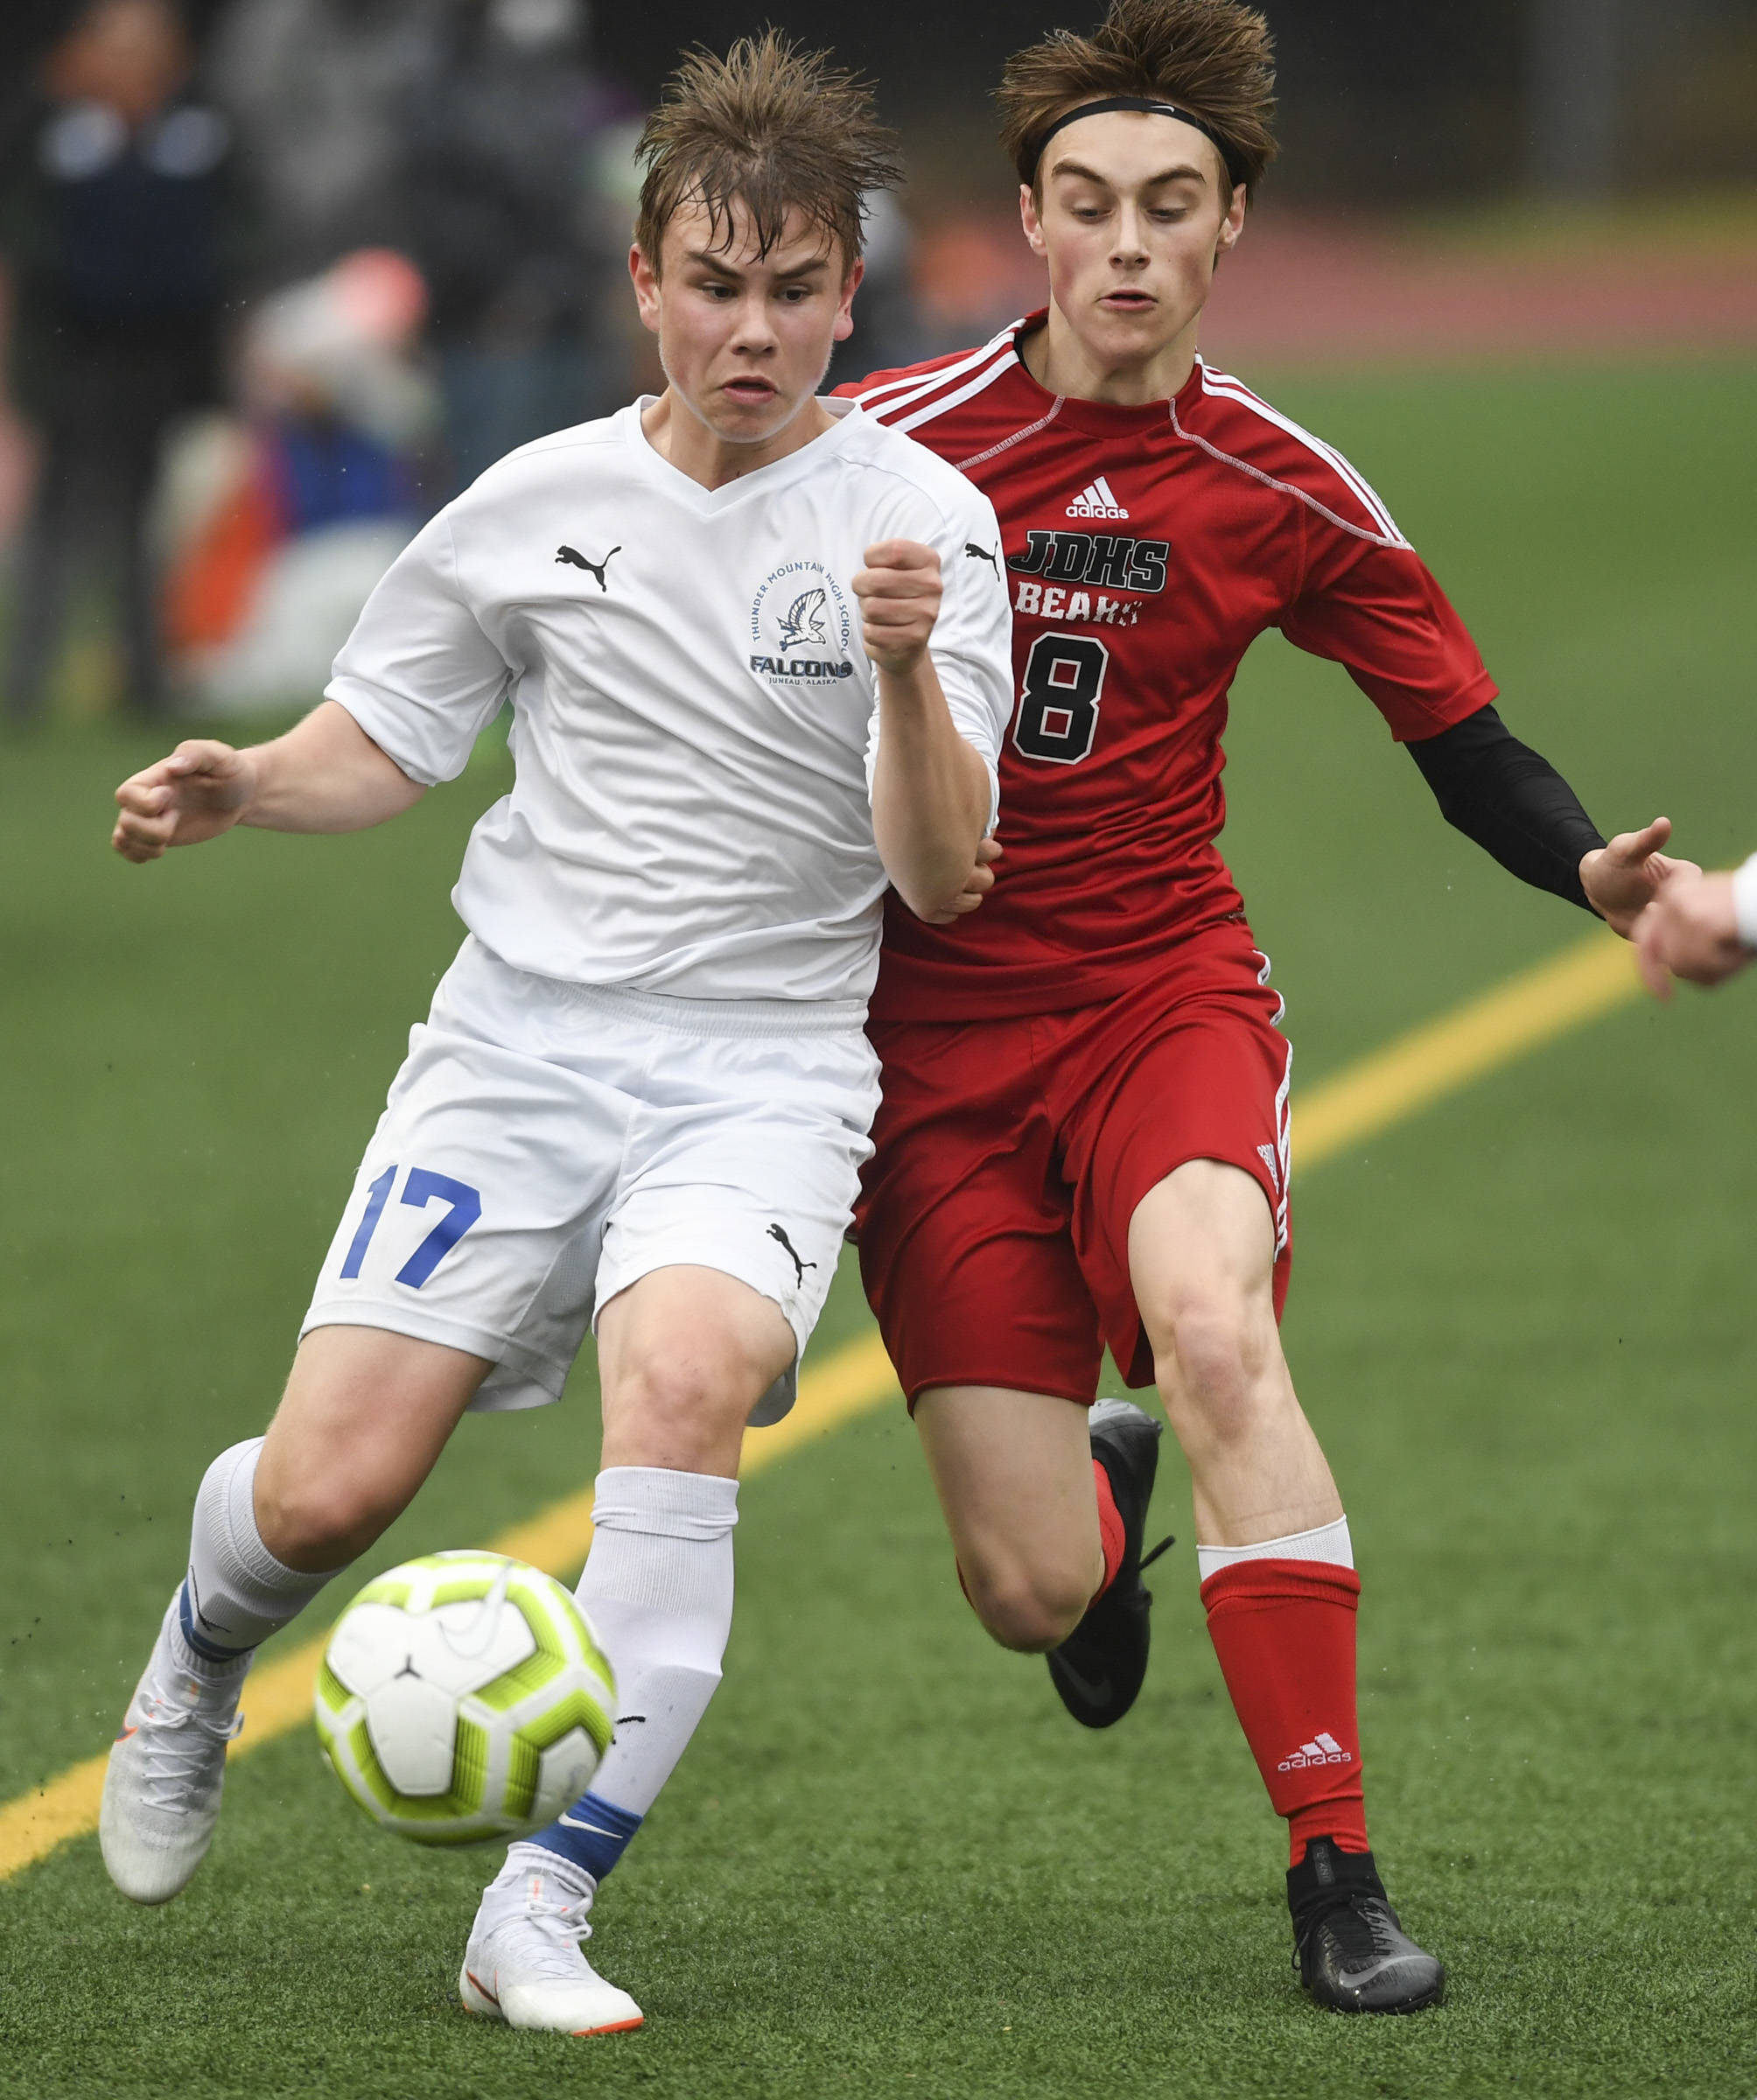 Thunder Mountain's Logan Miller, left, moves the ball against Juneau-Douglas' Koby Goldstein at Adair-Kennedy Memorial Field on Tuesday, May 7, 2019. The game ended tied at 1-1. (Michael Penn | Juneau Empire)